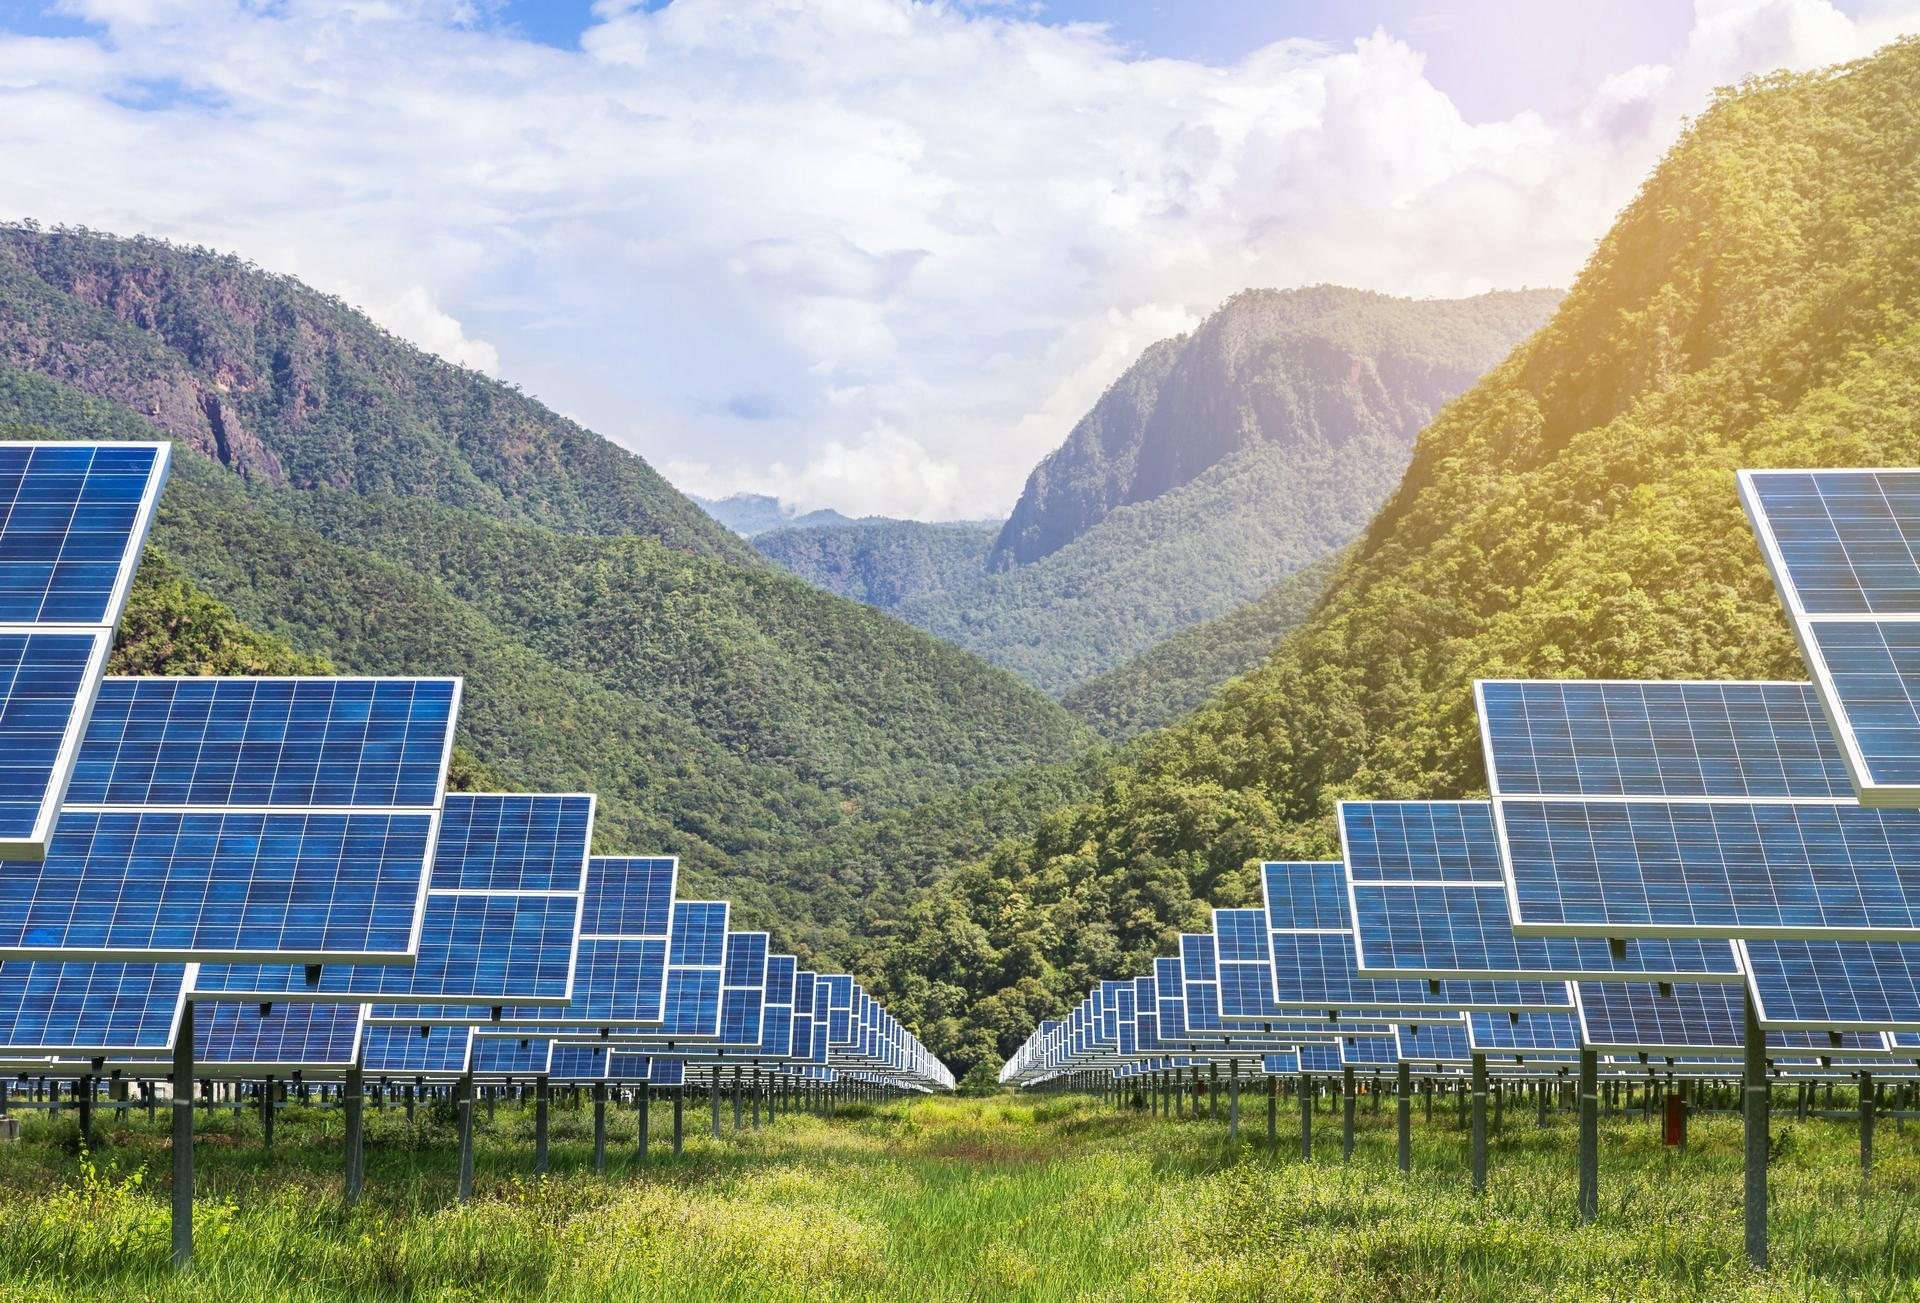 Solar array (Thinkstock image)